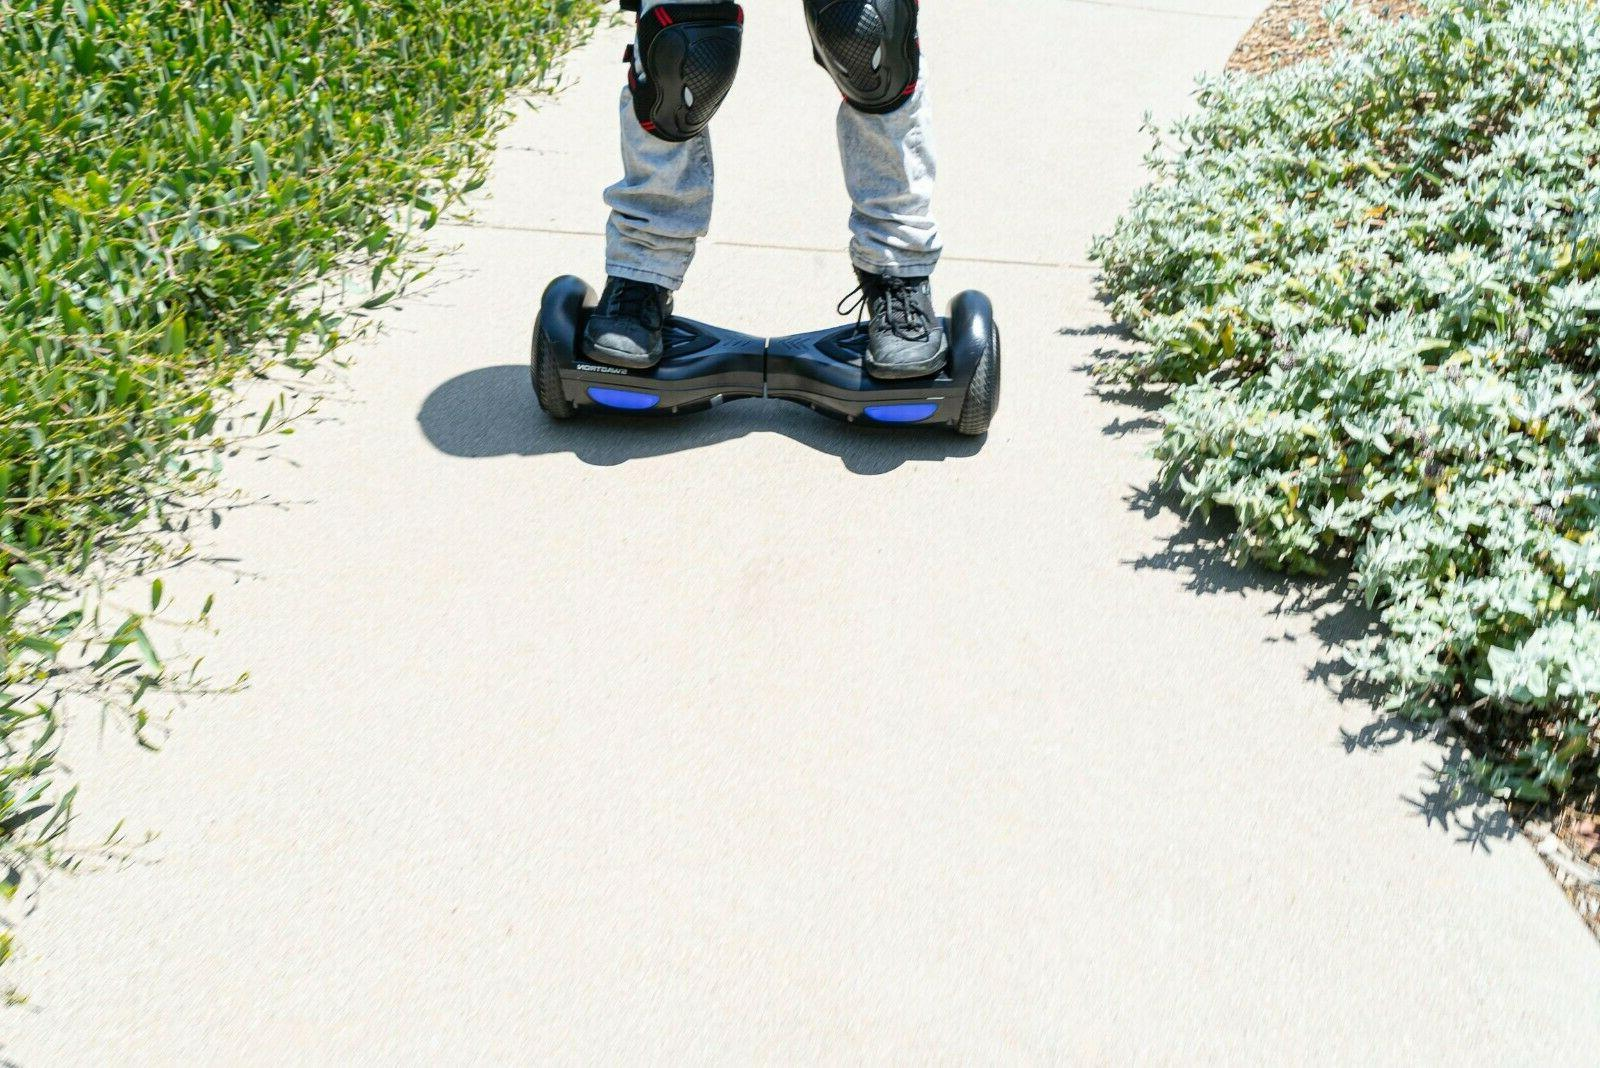 SWAGTRON Swagboard w/ Lithium-Free